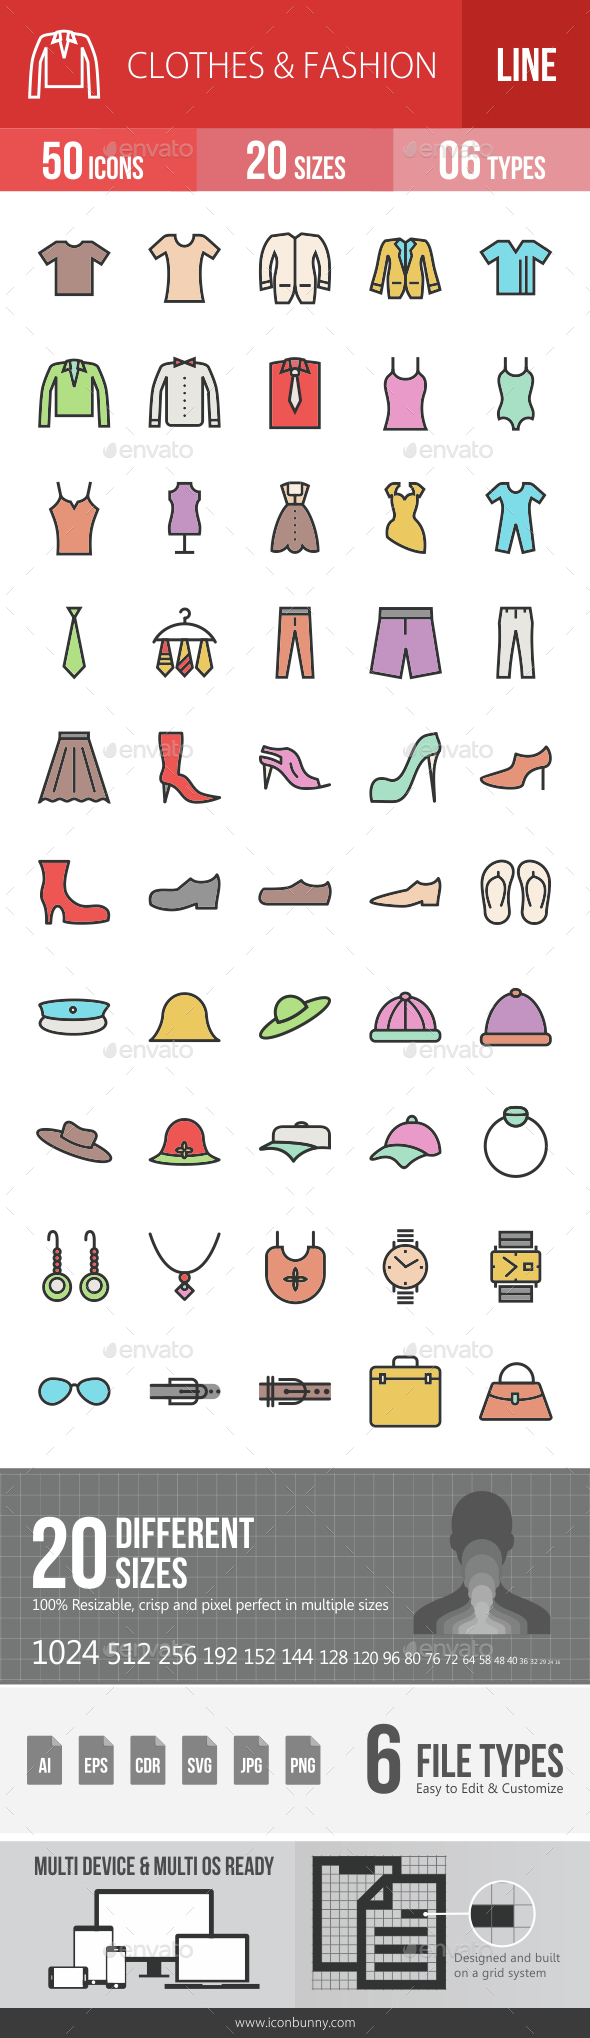 Clothes & Fashion Filled Line Icons - Icons